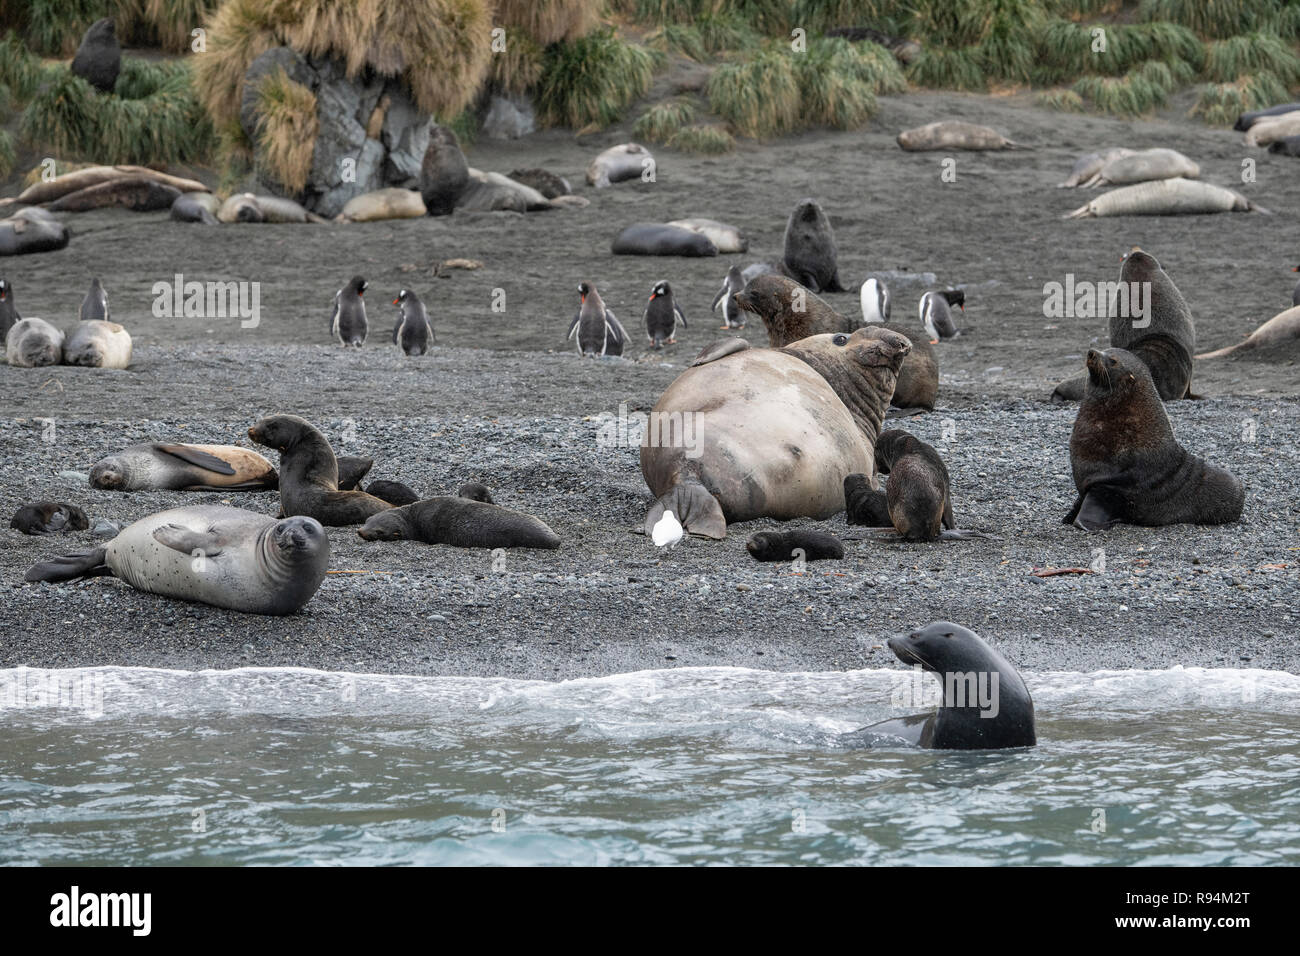 South Georgia, Cooper Bay. Abundant wildlife along the rocky coastline showing a variety of species, including Antarctic fur seals with pups. - Stock Image